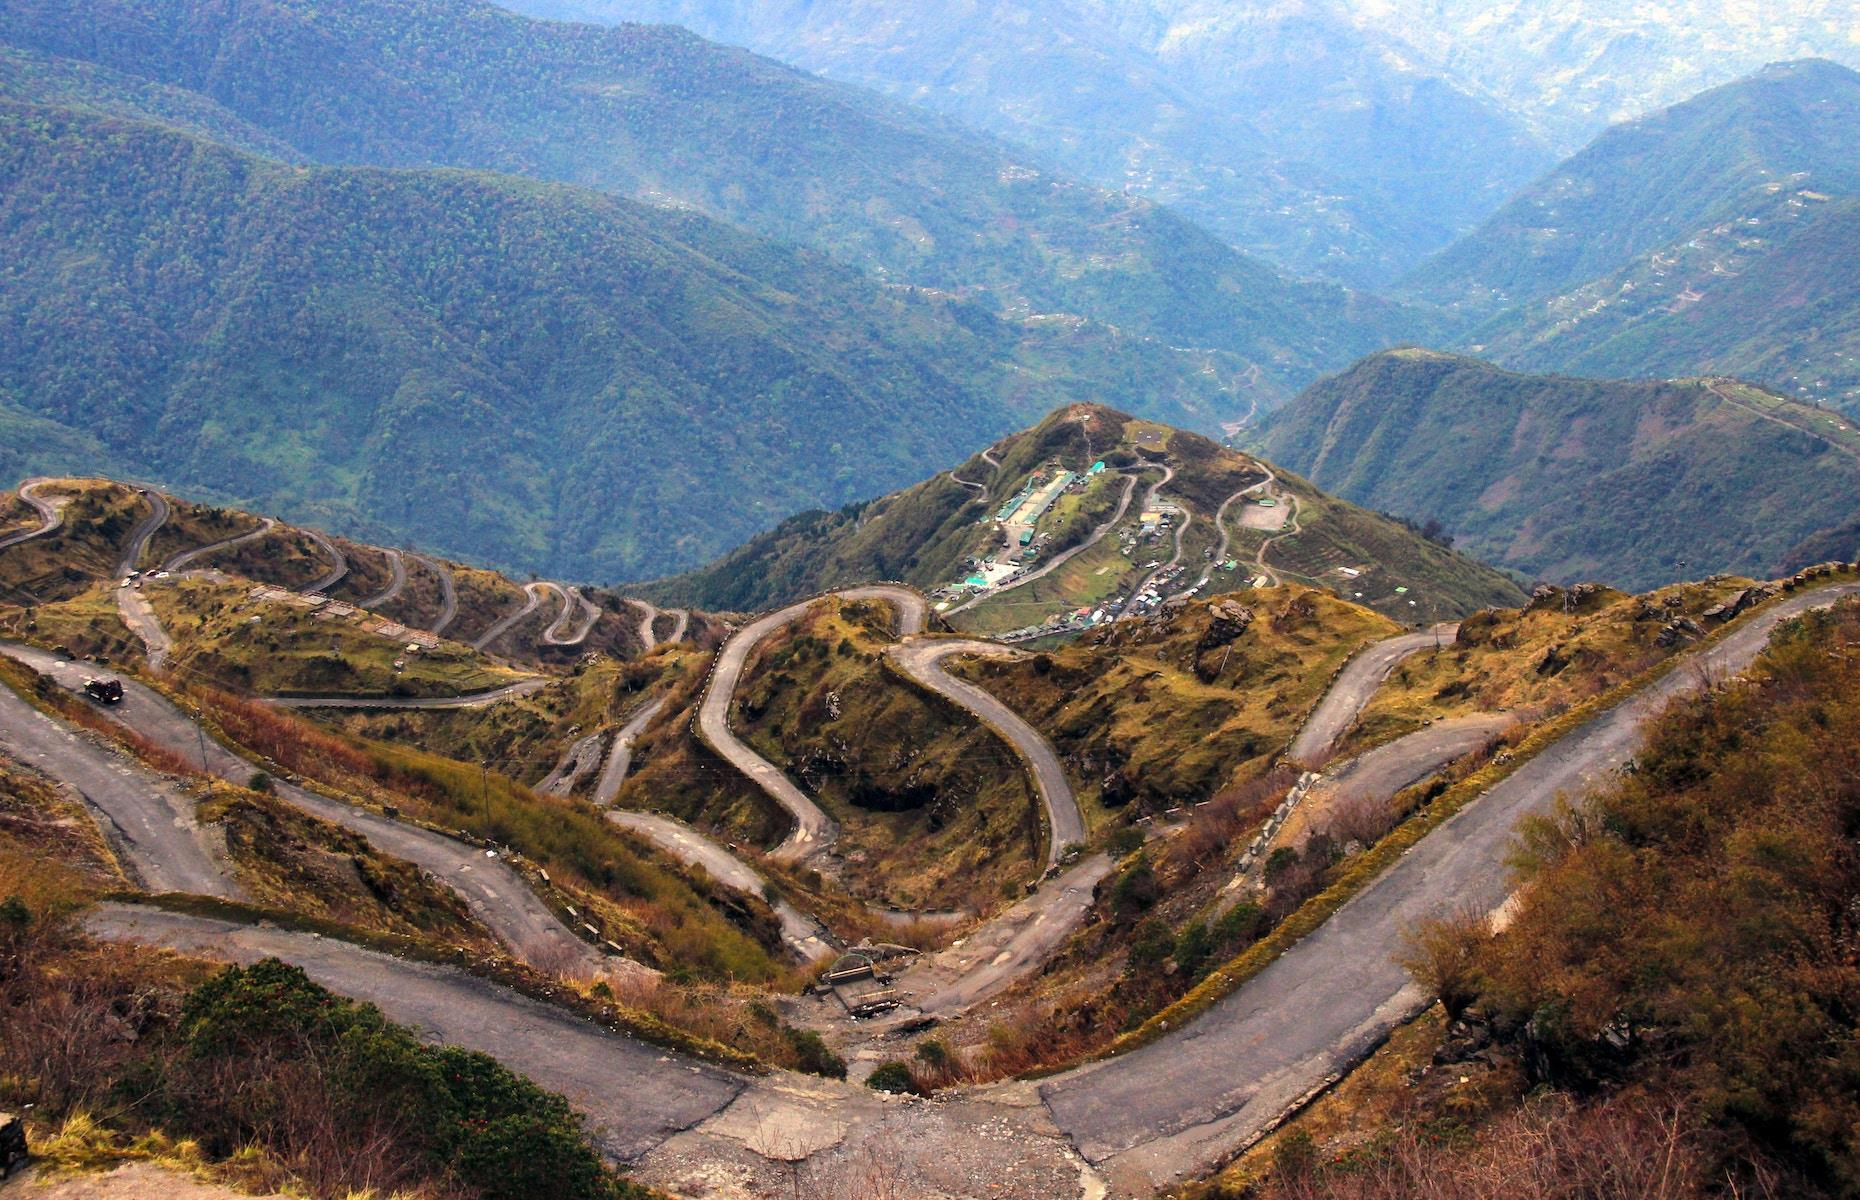 Slide 20 of 31: Draped in elegant spirals which traverse the rugged lower Himalayas, the Three Level Zigzag Road is as dizzying as it is breathtakingly beautiful. The treacherous trail starts at the village of Dzuluk and climbs up the mountain to Thambi View Point at 11,200 feet (3,400m) above sea level, complete with a stomach-churning 100 serpentine bends over the course of just 19 miles (30km).